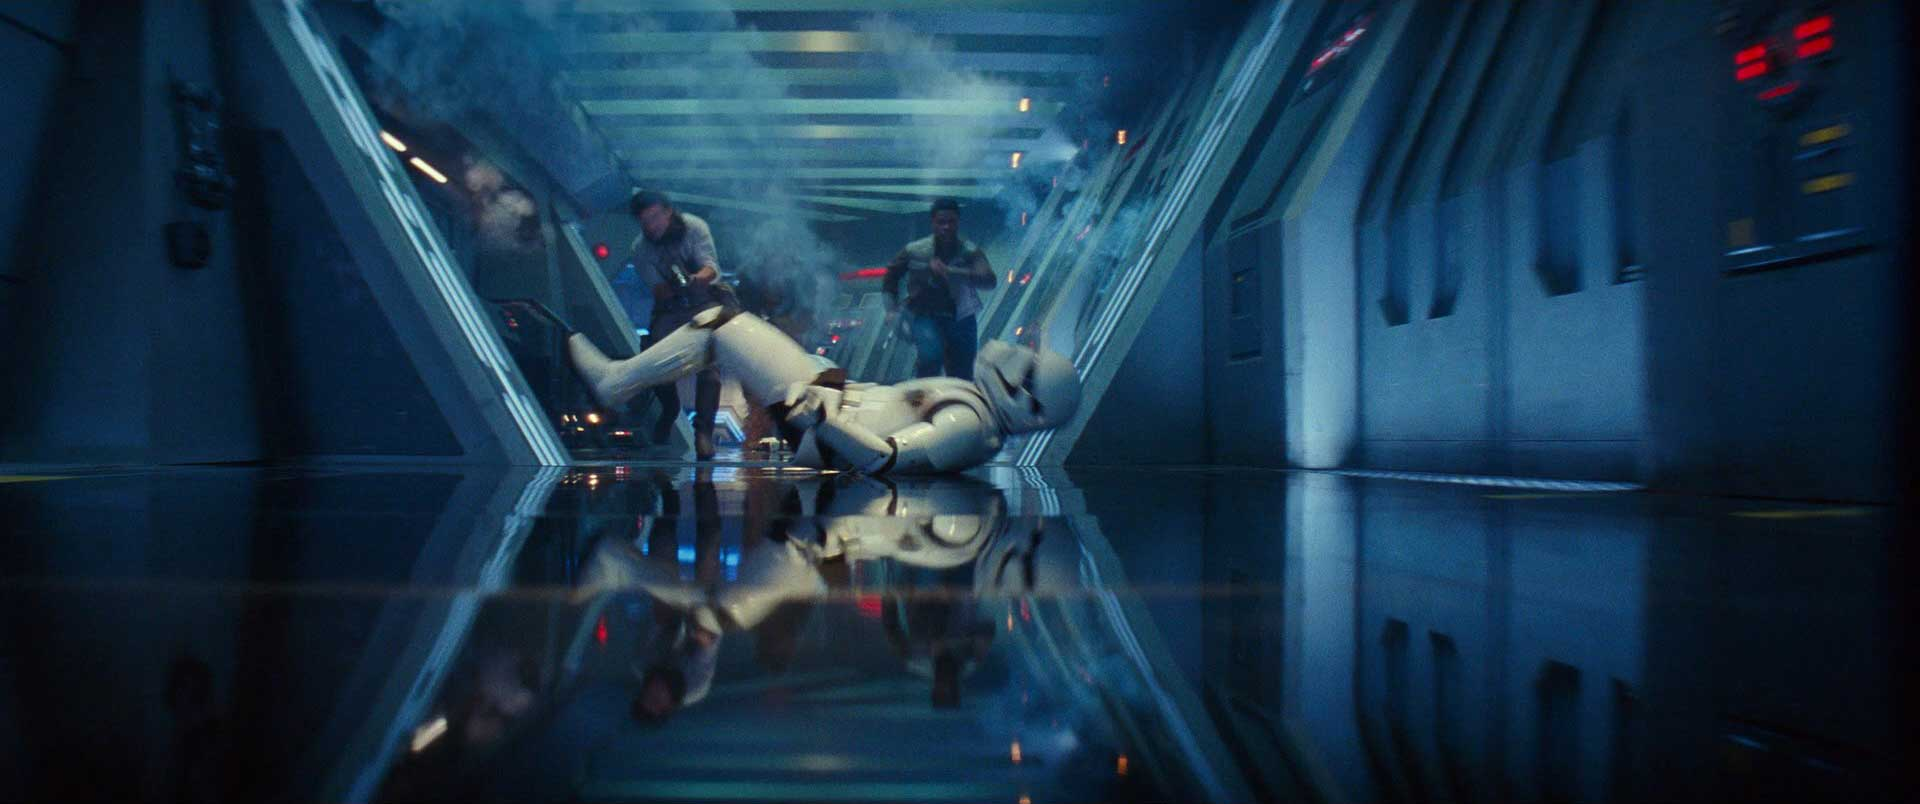 star wars trailer - photo #23